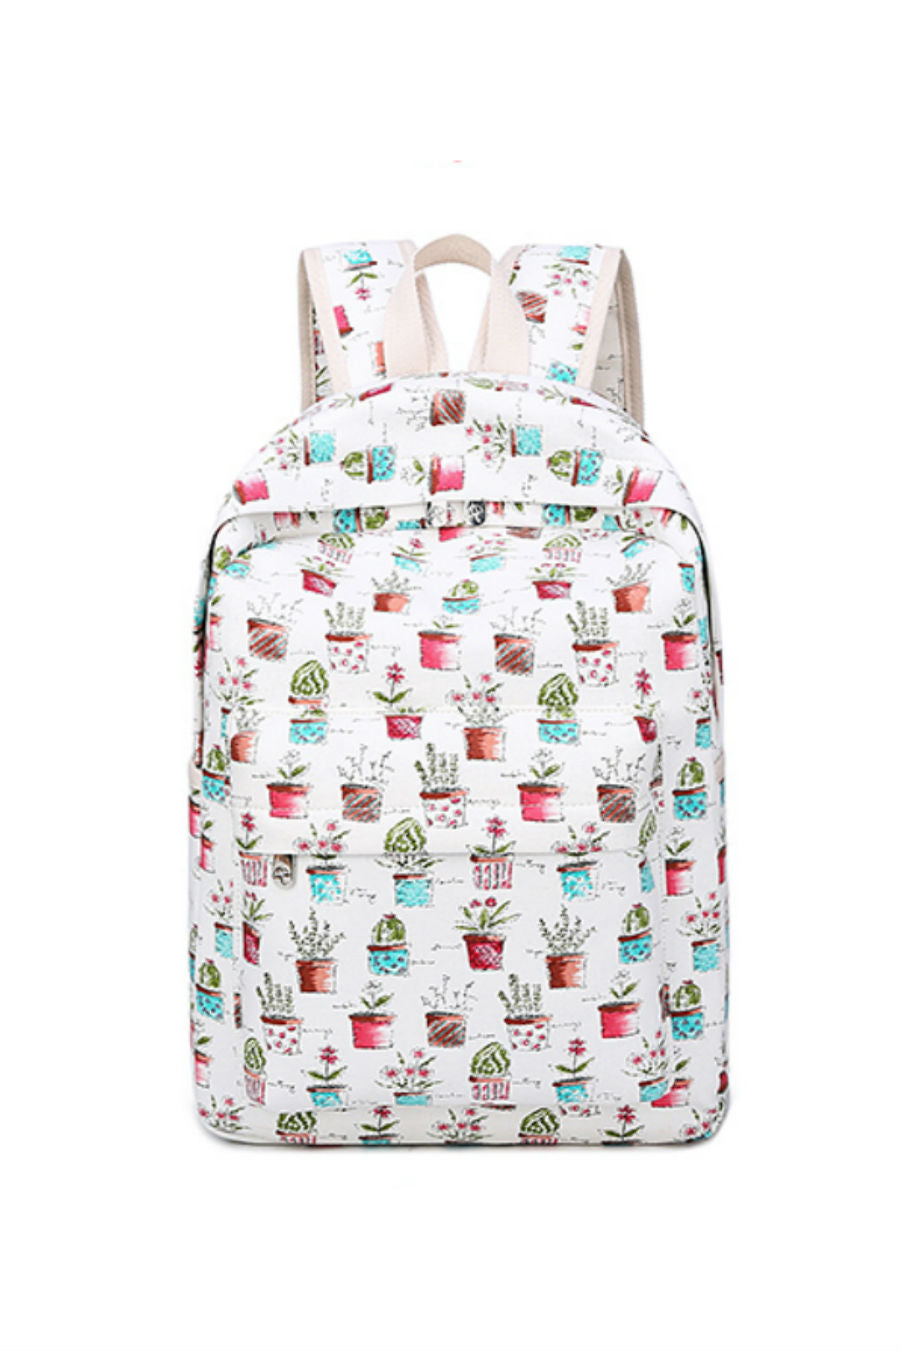 Plants Prints Backpack